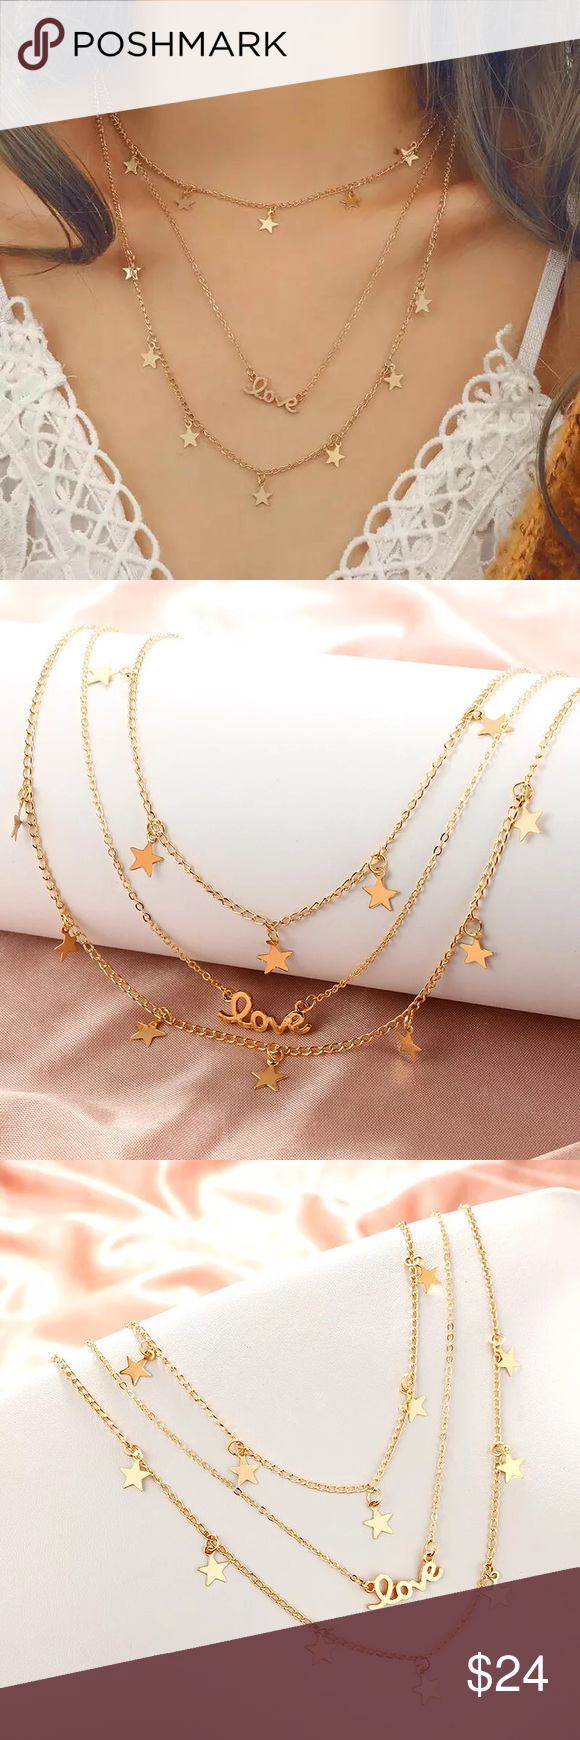 Photo of Boho Multilayer LOVE Star Gold Choker Necklace Triple Layered LOVE Star Pendant …